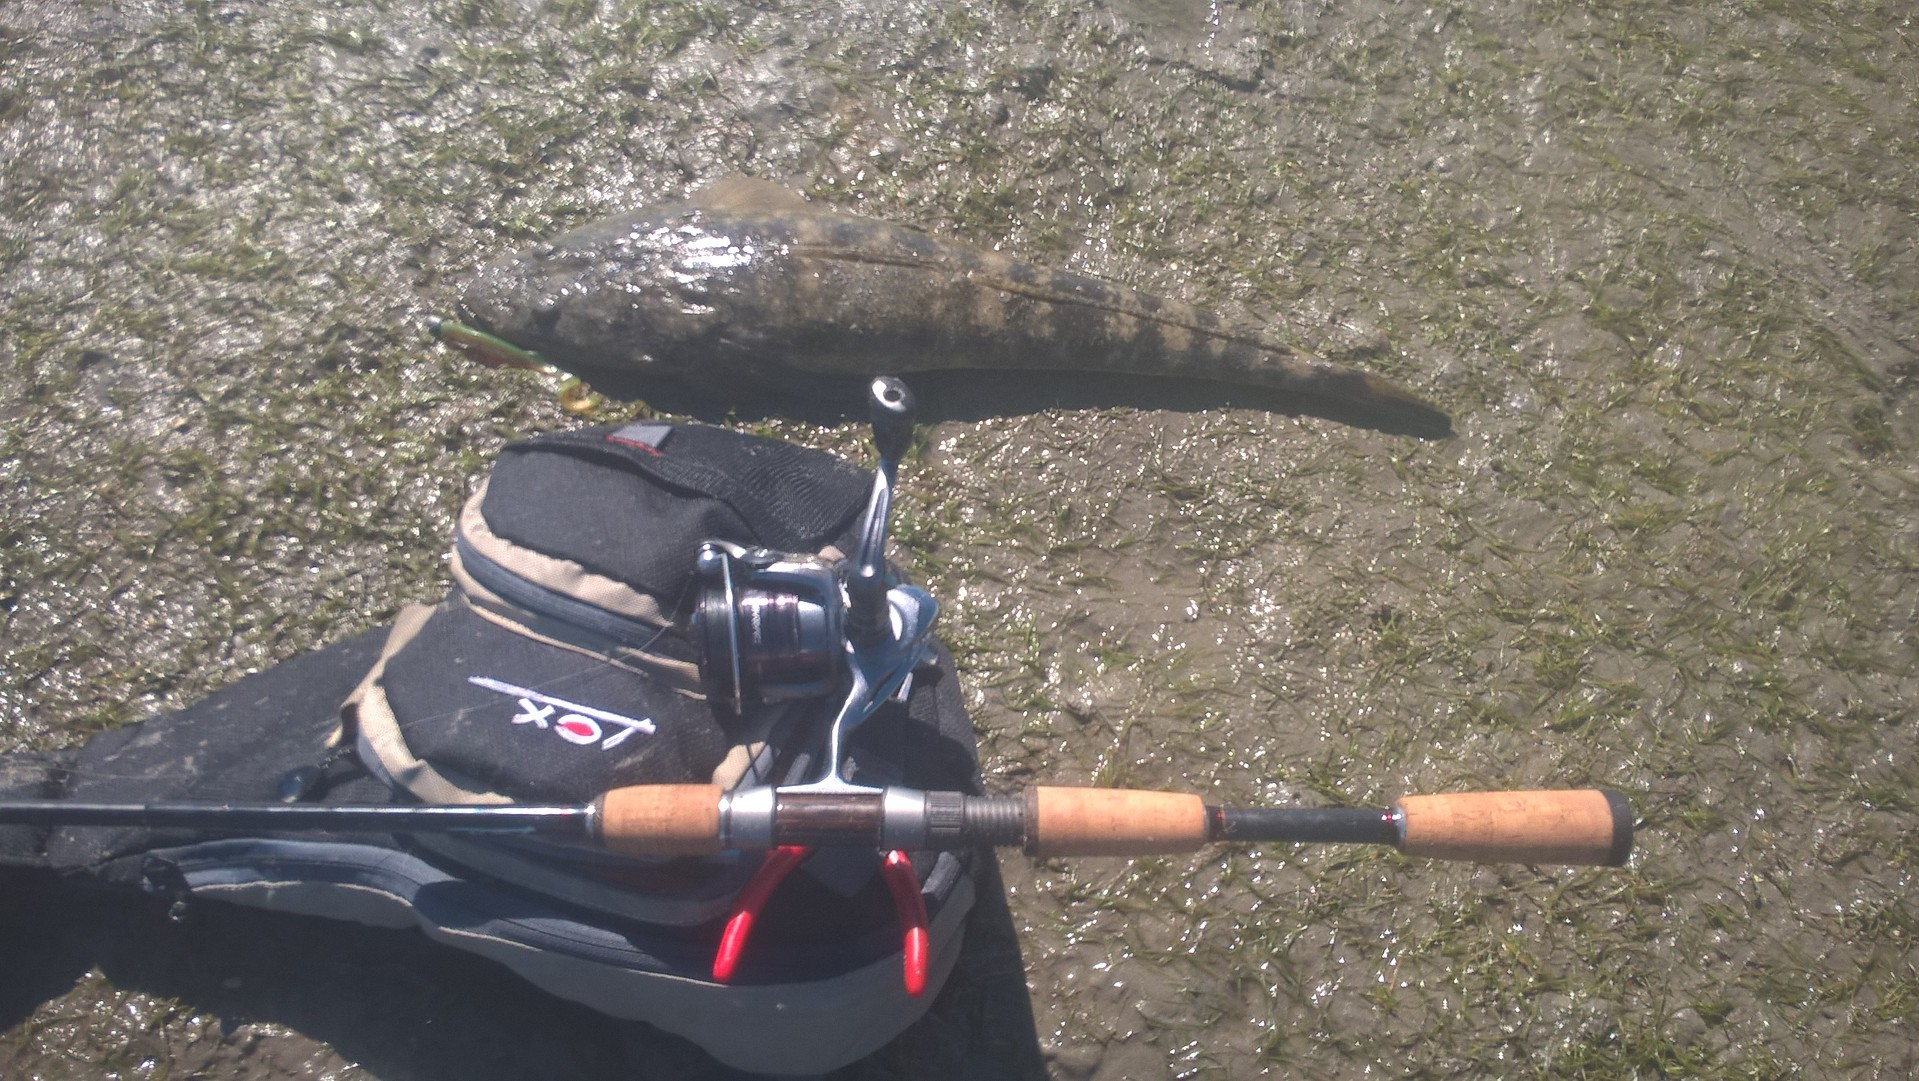 The author's flathead tackle of choice including the very handy Lox shoulder bag.